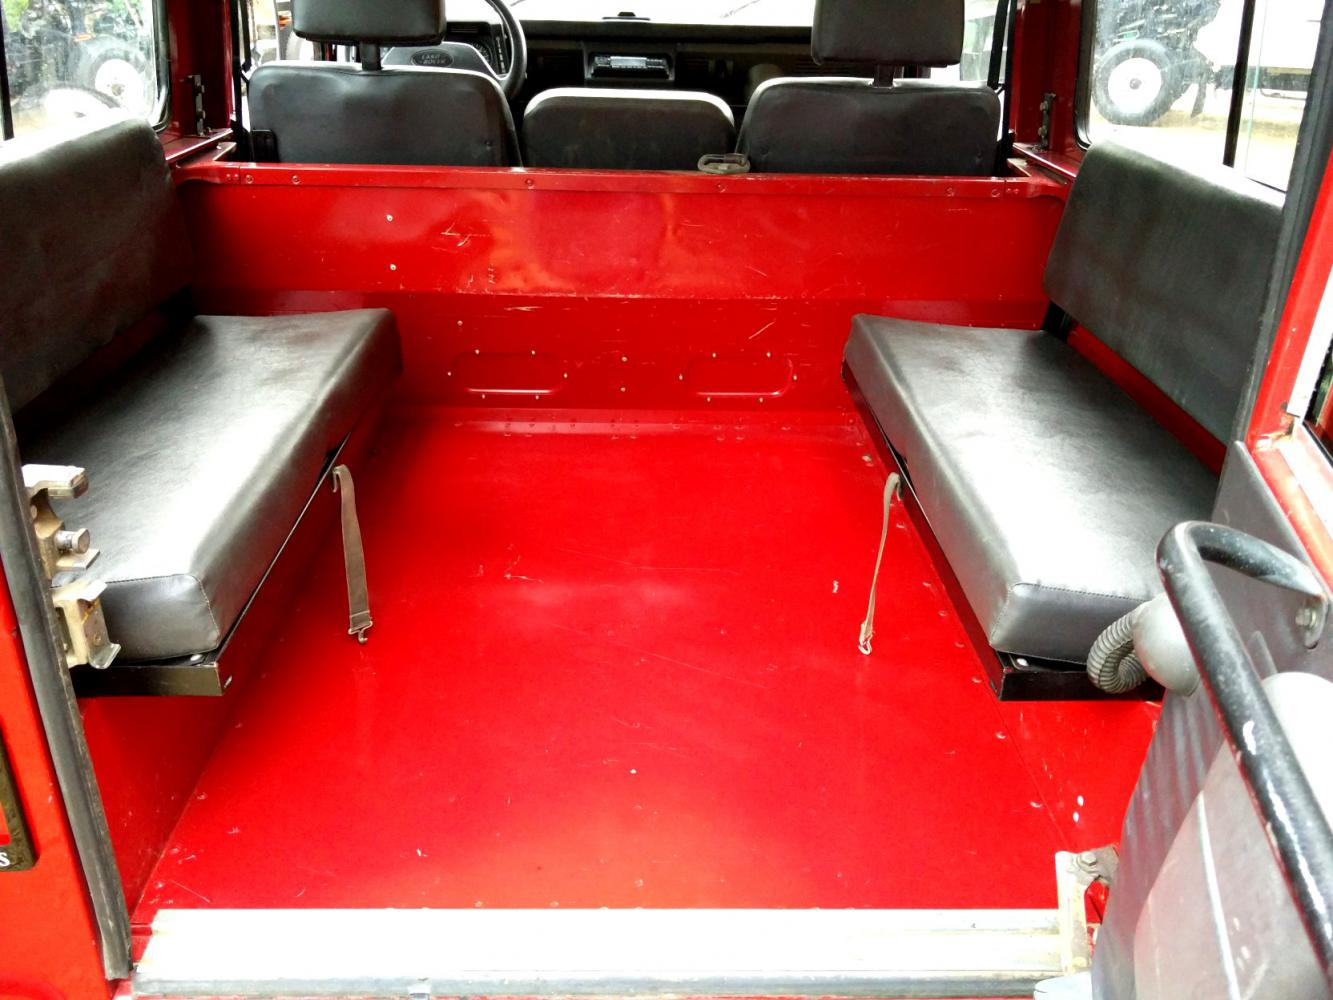 Click image for larger version  Name:1992 LR LHD Defender 90 Red 200 Tdi interior loadflloor with benchseats.jpg Views:162 Size:138.2 KB ID:263706